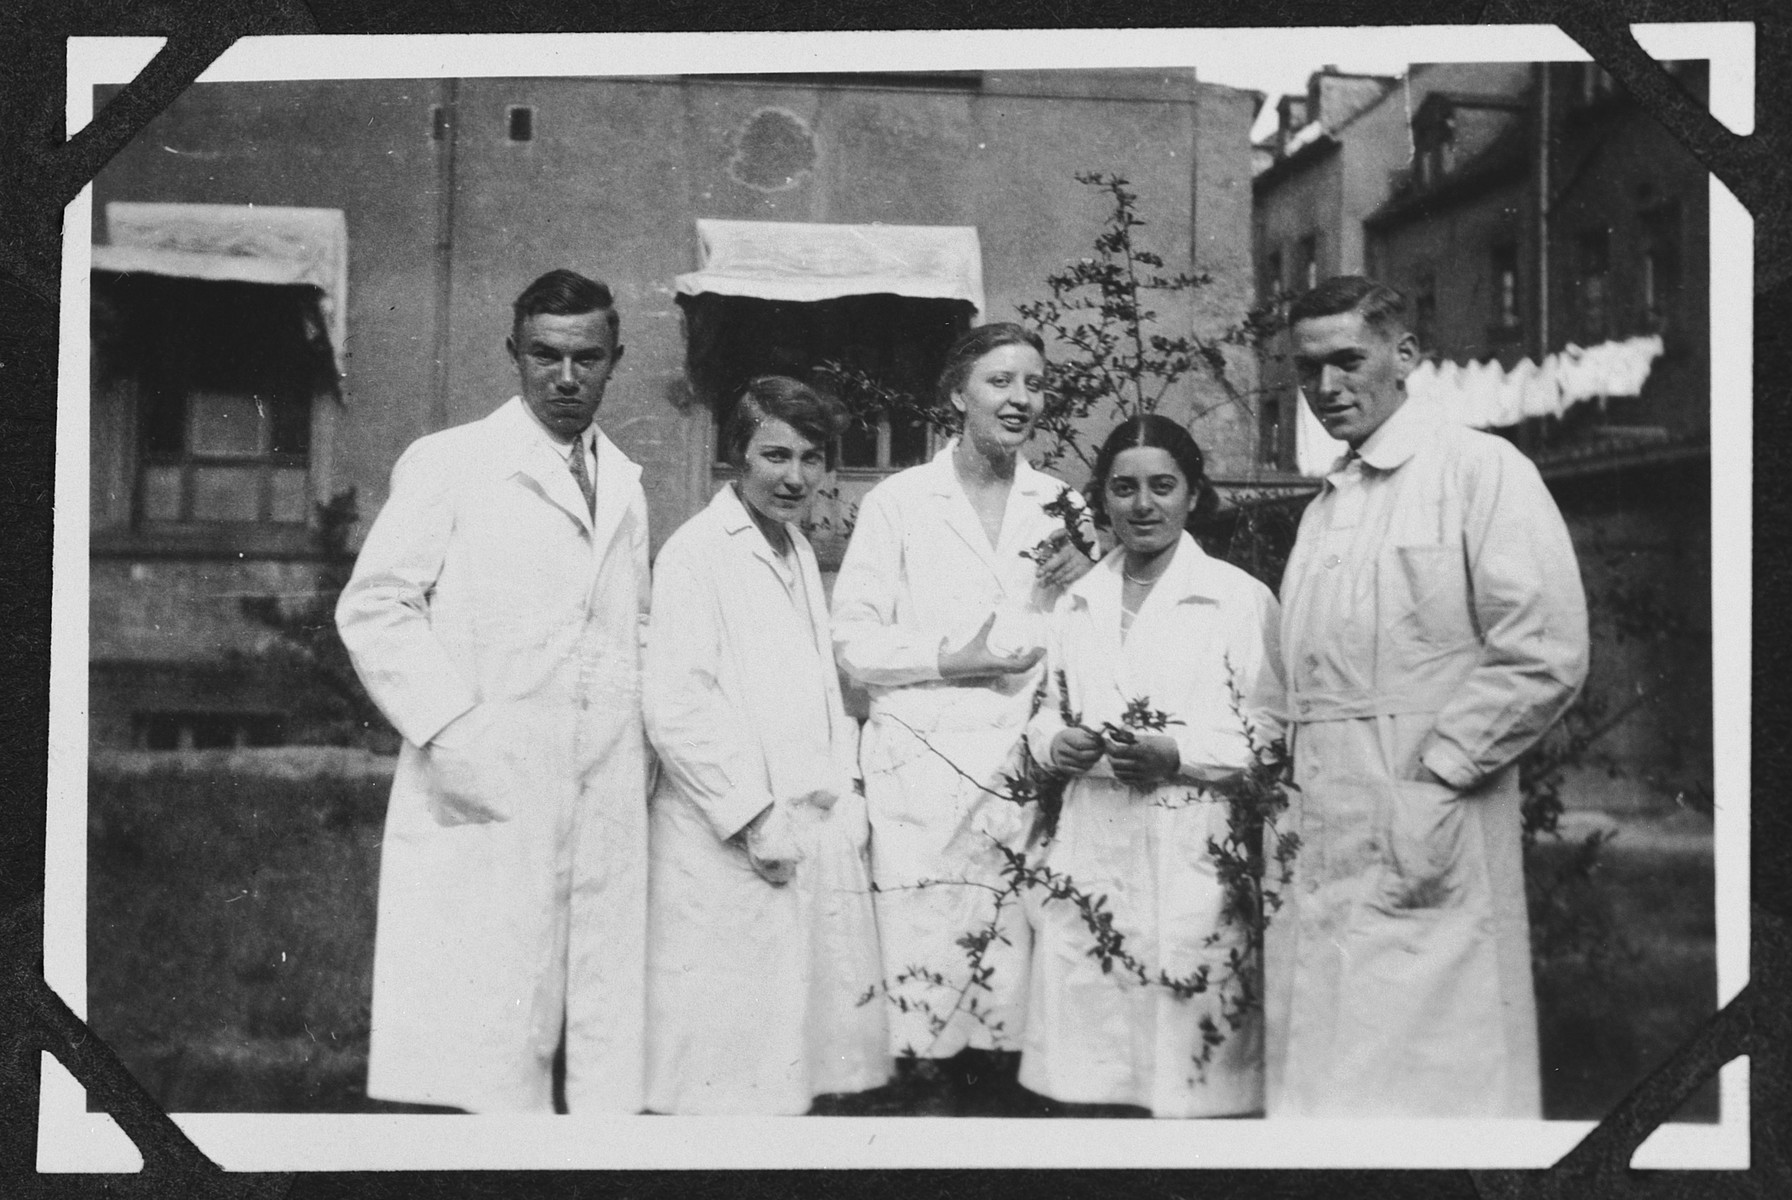 Group photograph of chemistry or dental students in the courtyard of the chemistry building at the University of Heidelberg.  Those pictured include Margot Bähr (second from the right).